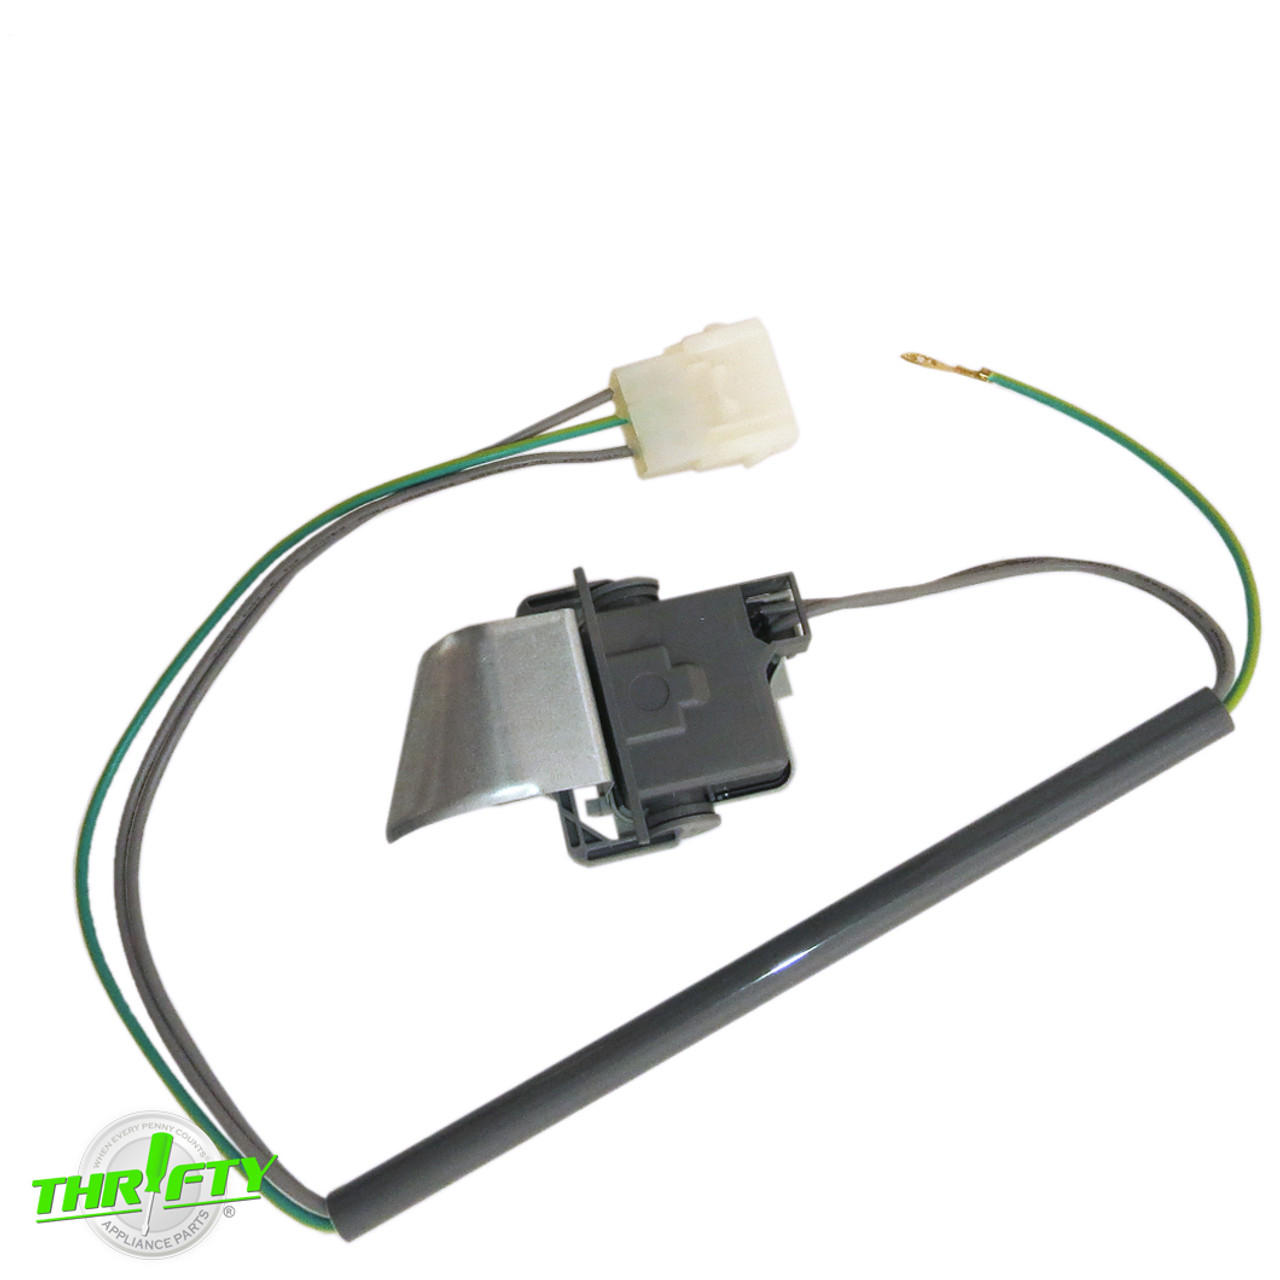 3949238 Whirlpool Lid Switch Replacement Thrifty